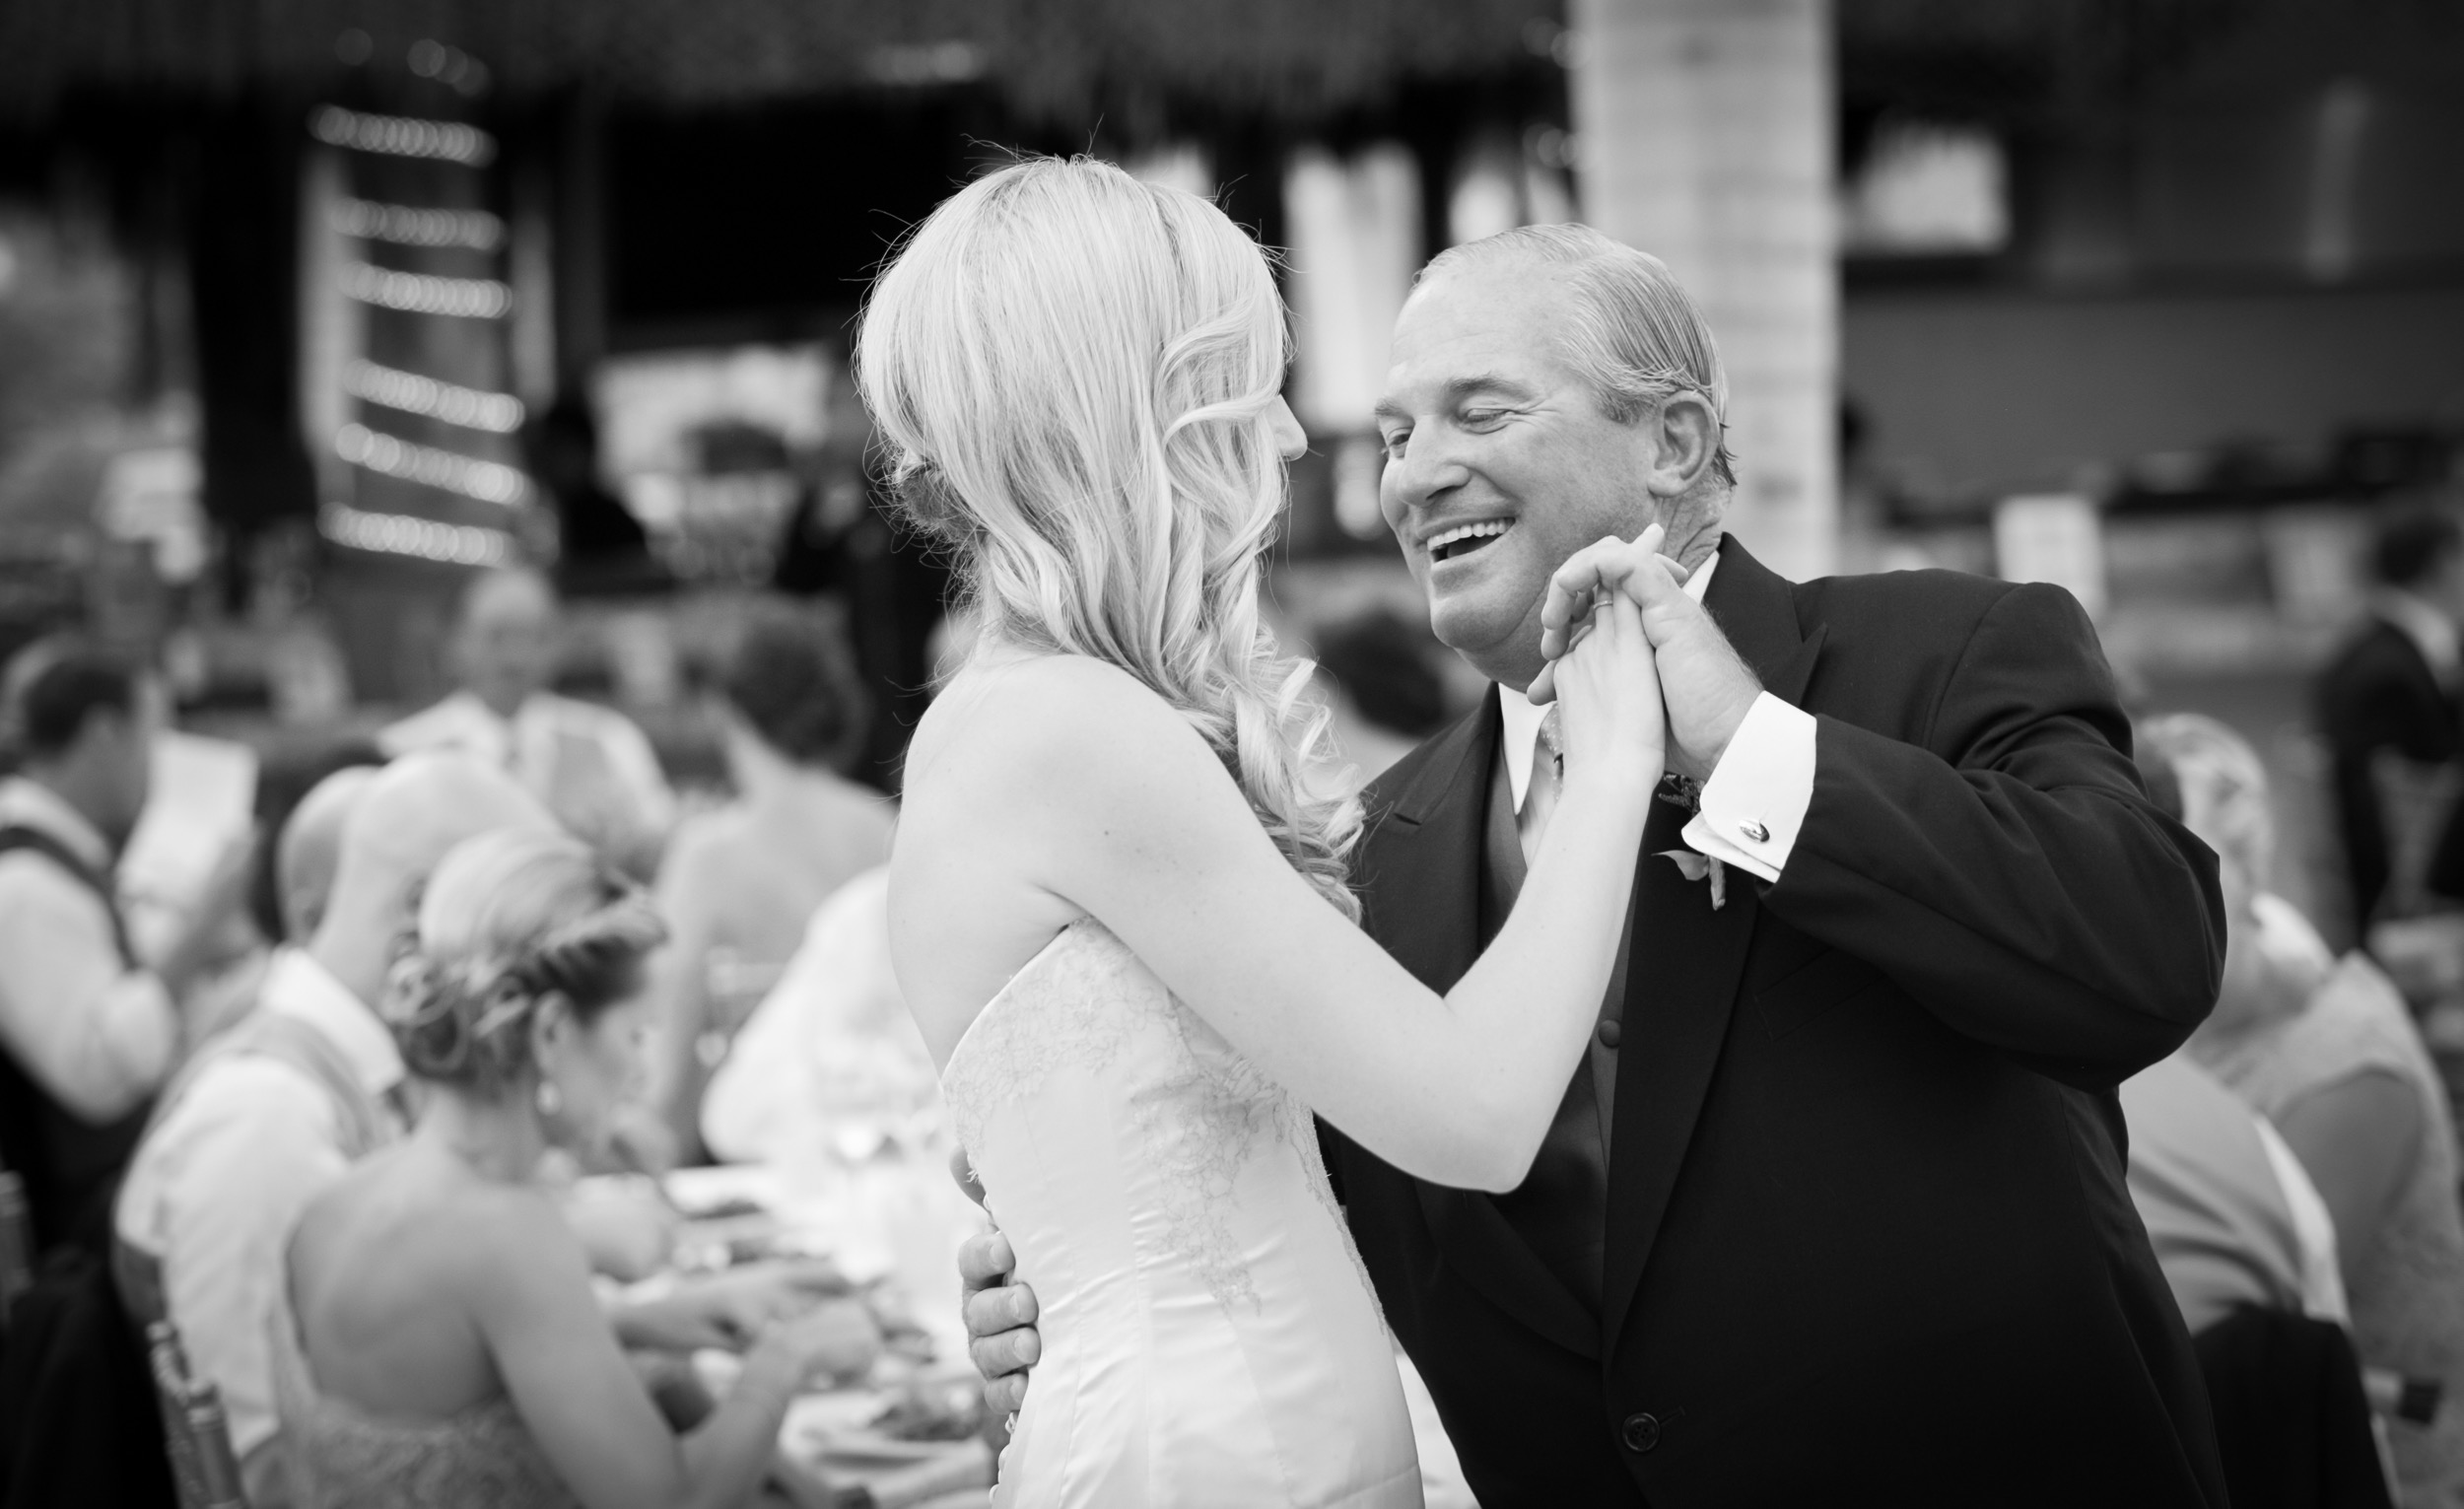 Proud father dancing with his daughter, the bride at a wedding in Mexico